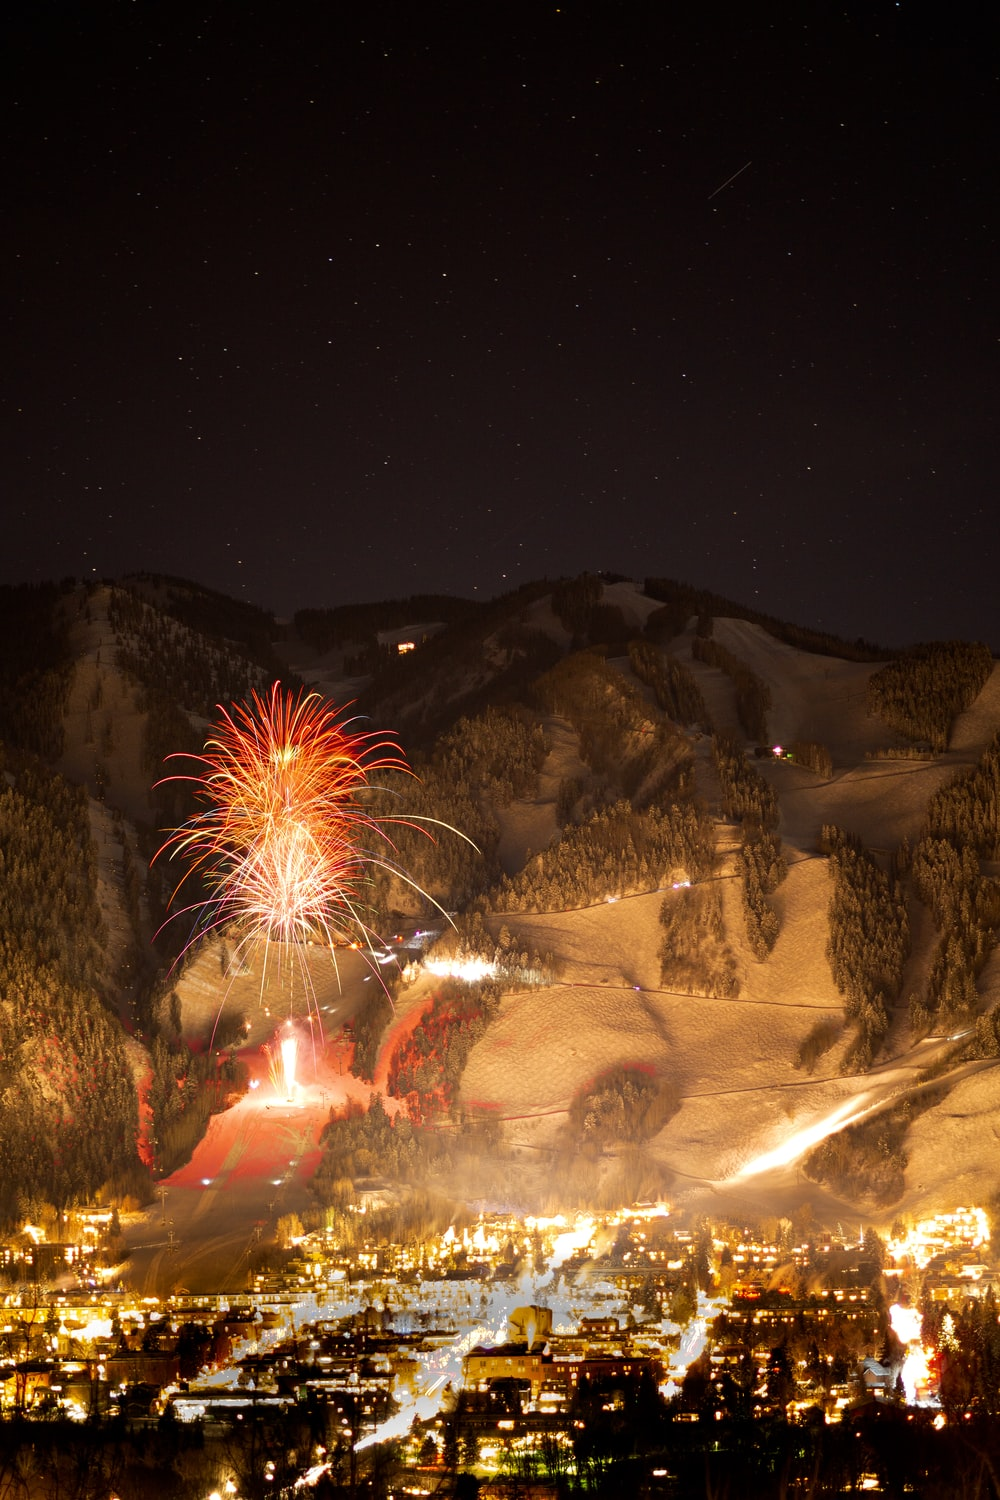 fireworks display above buildings viewing mountain